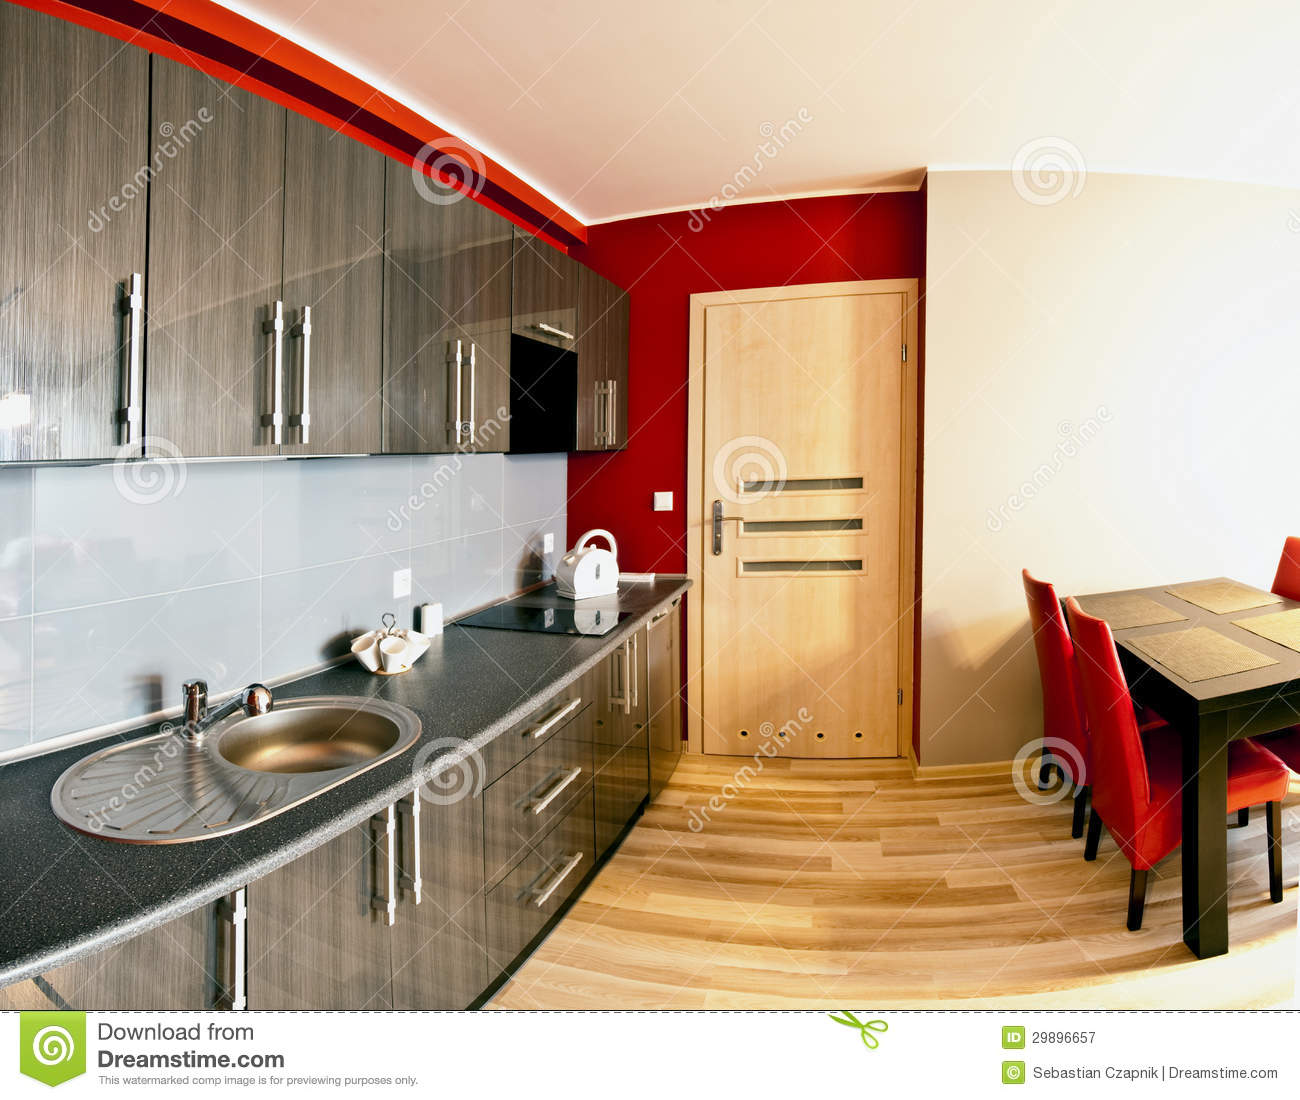 Combined Kitchen And Dining Room Stock Image Image 29896657